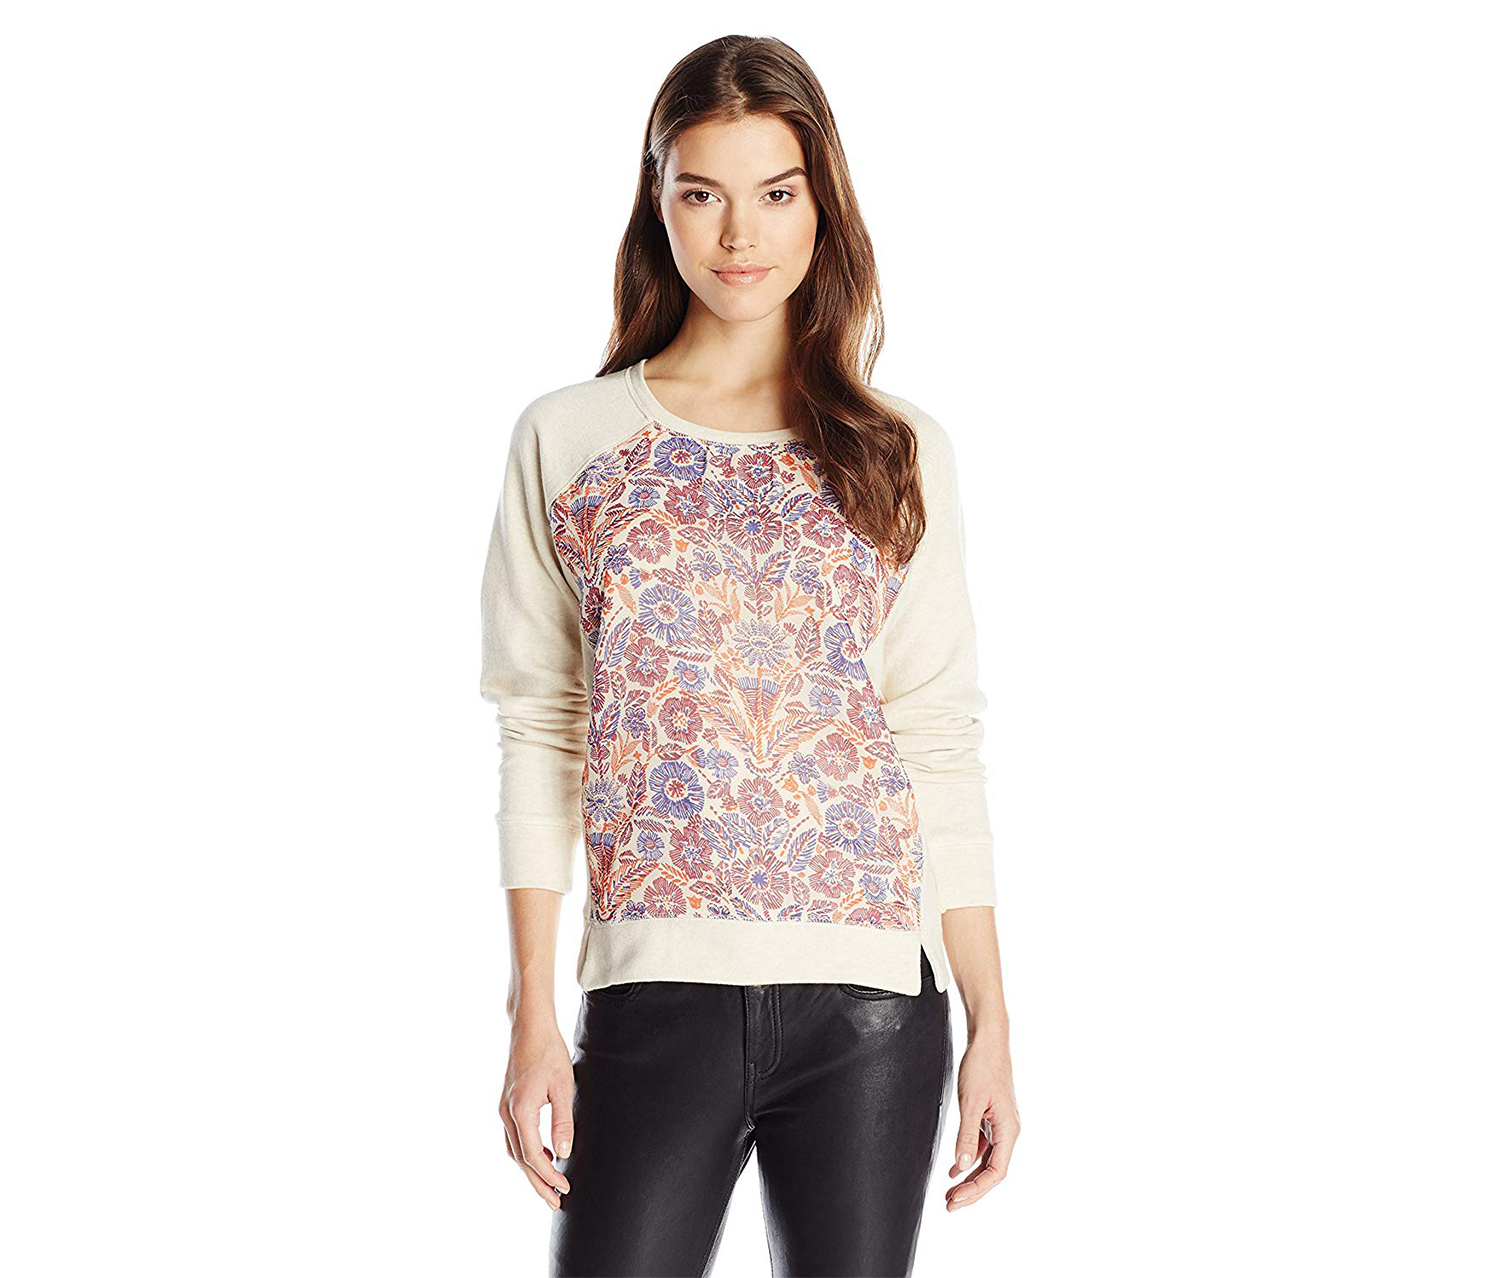 Lucky Brand Women's Bright Floral Pullover Sweater, Beige